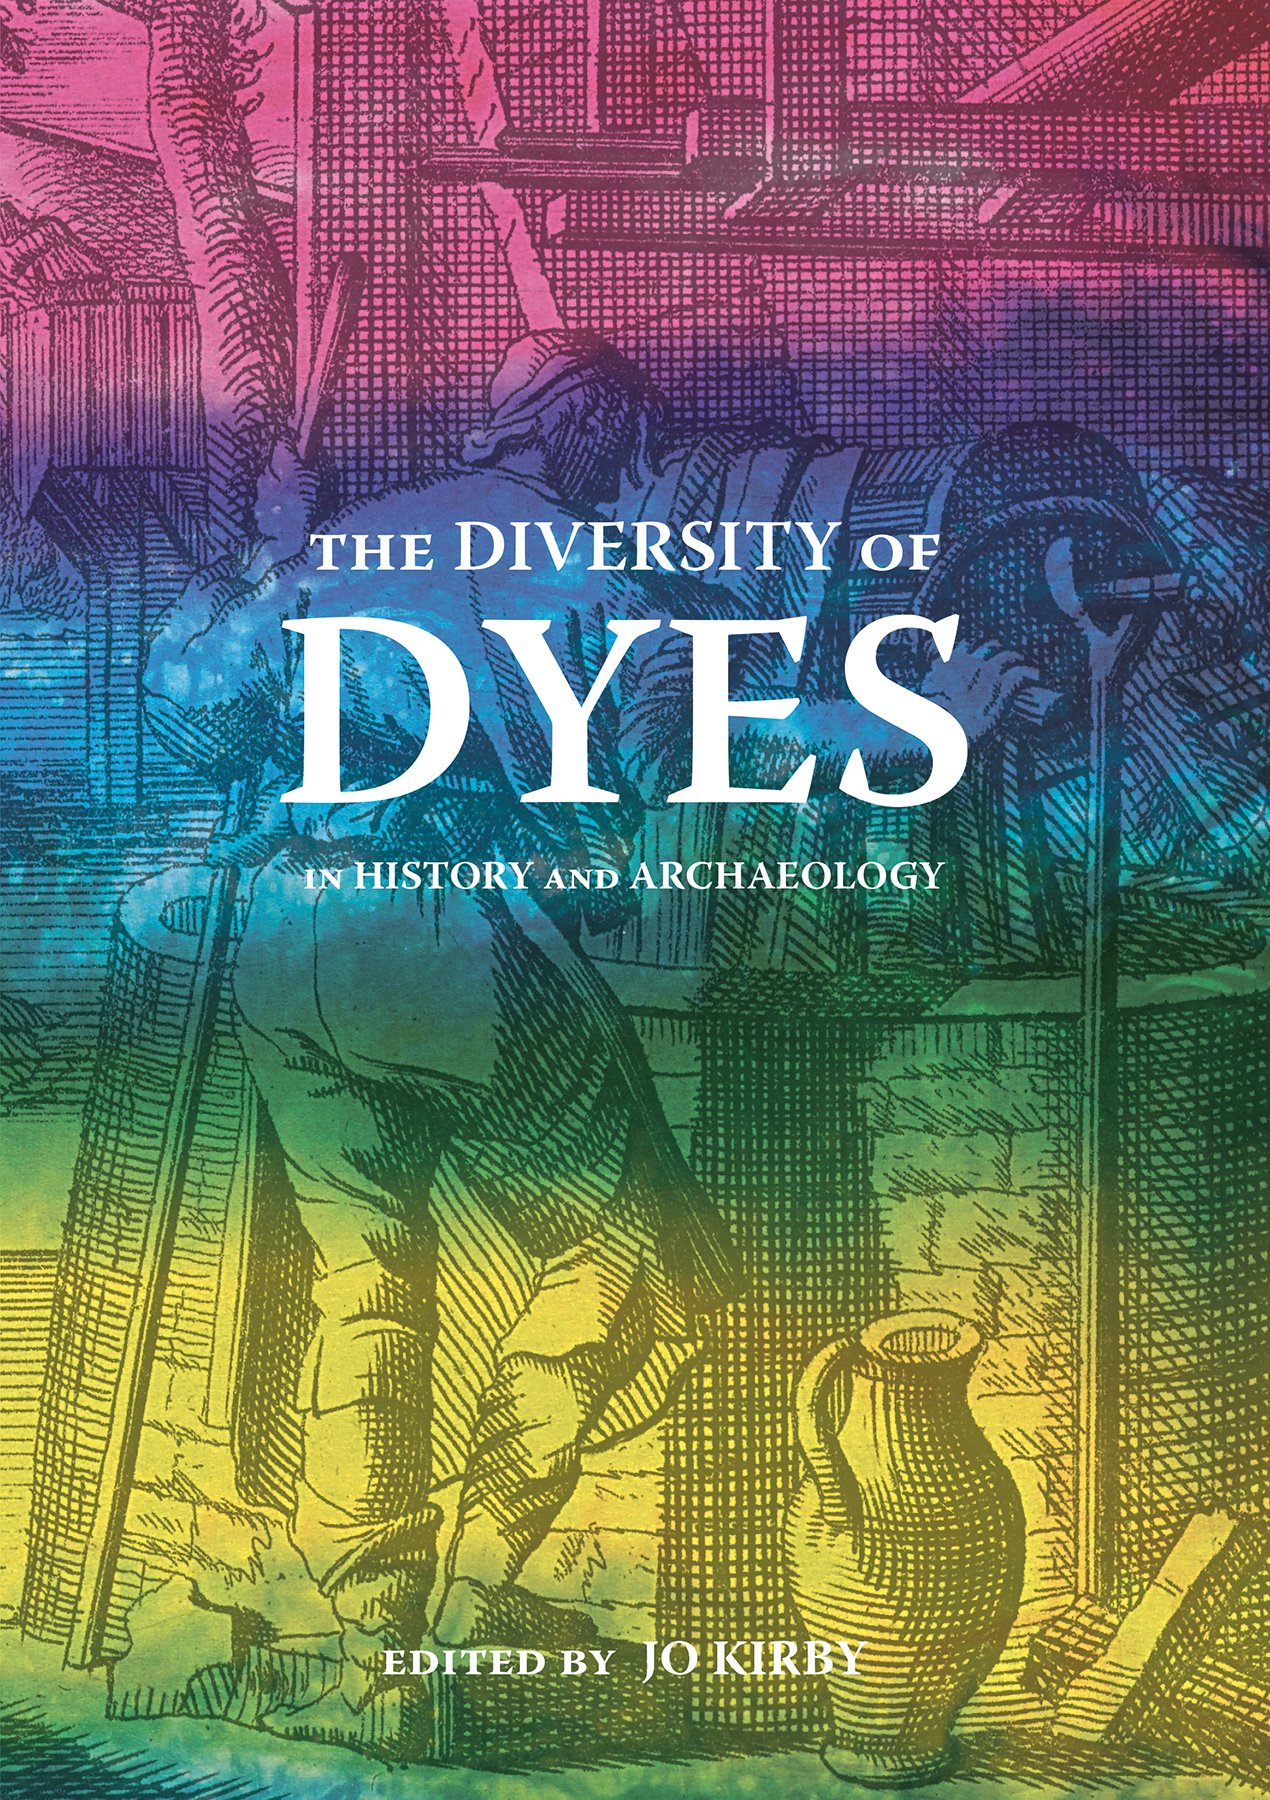 The Diversity of Dyes in History and Archaeology by Archetype Books